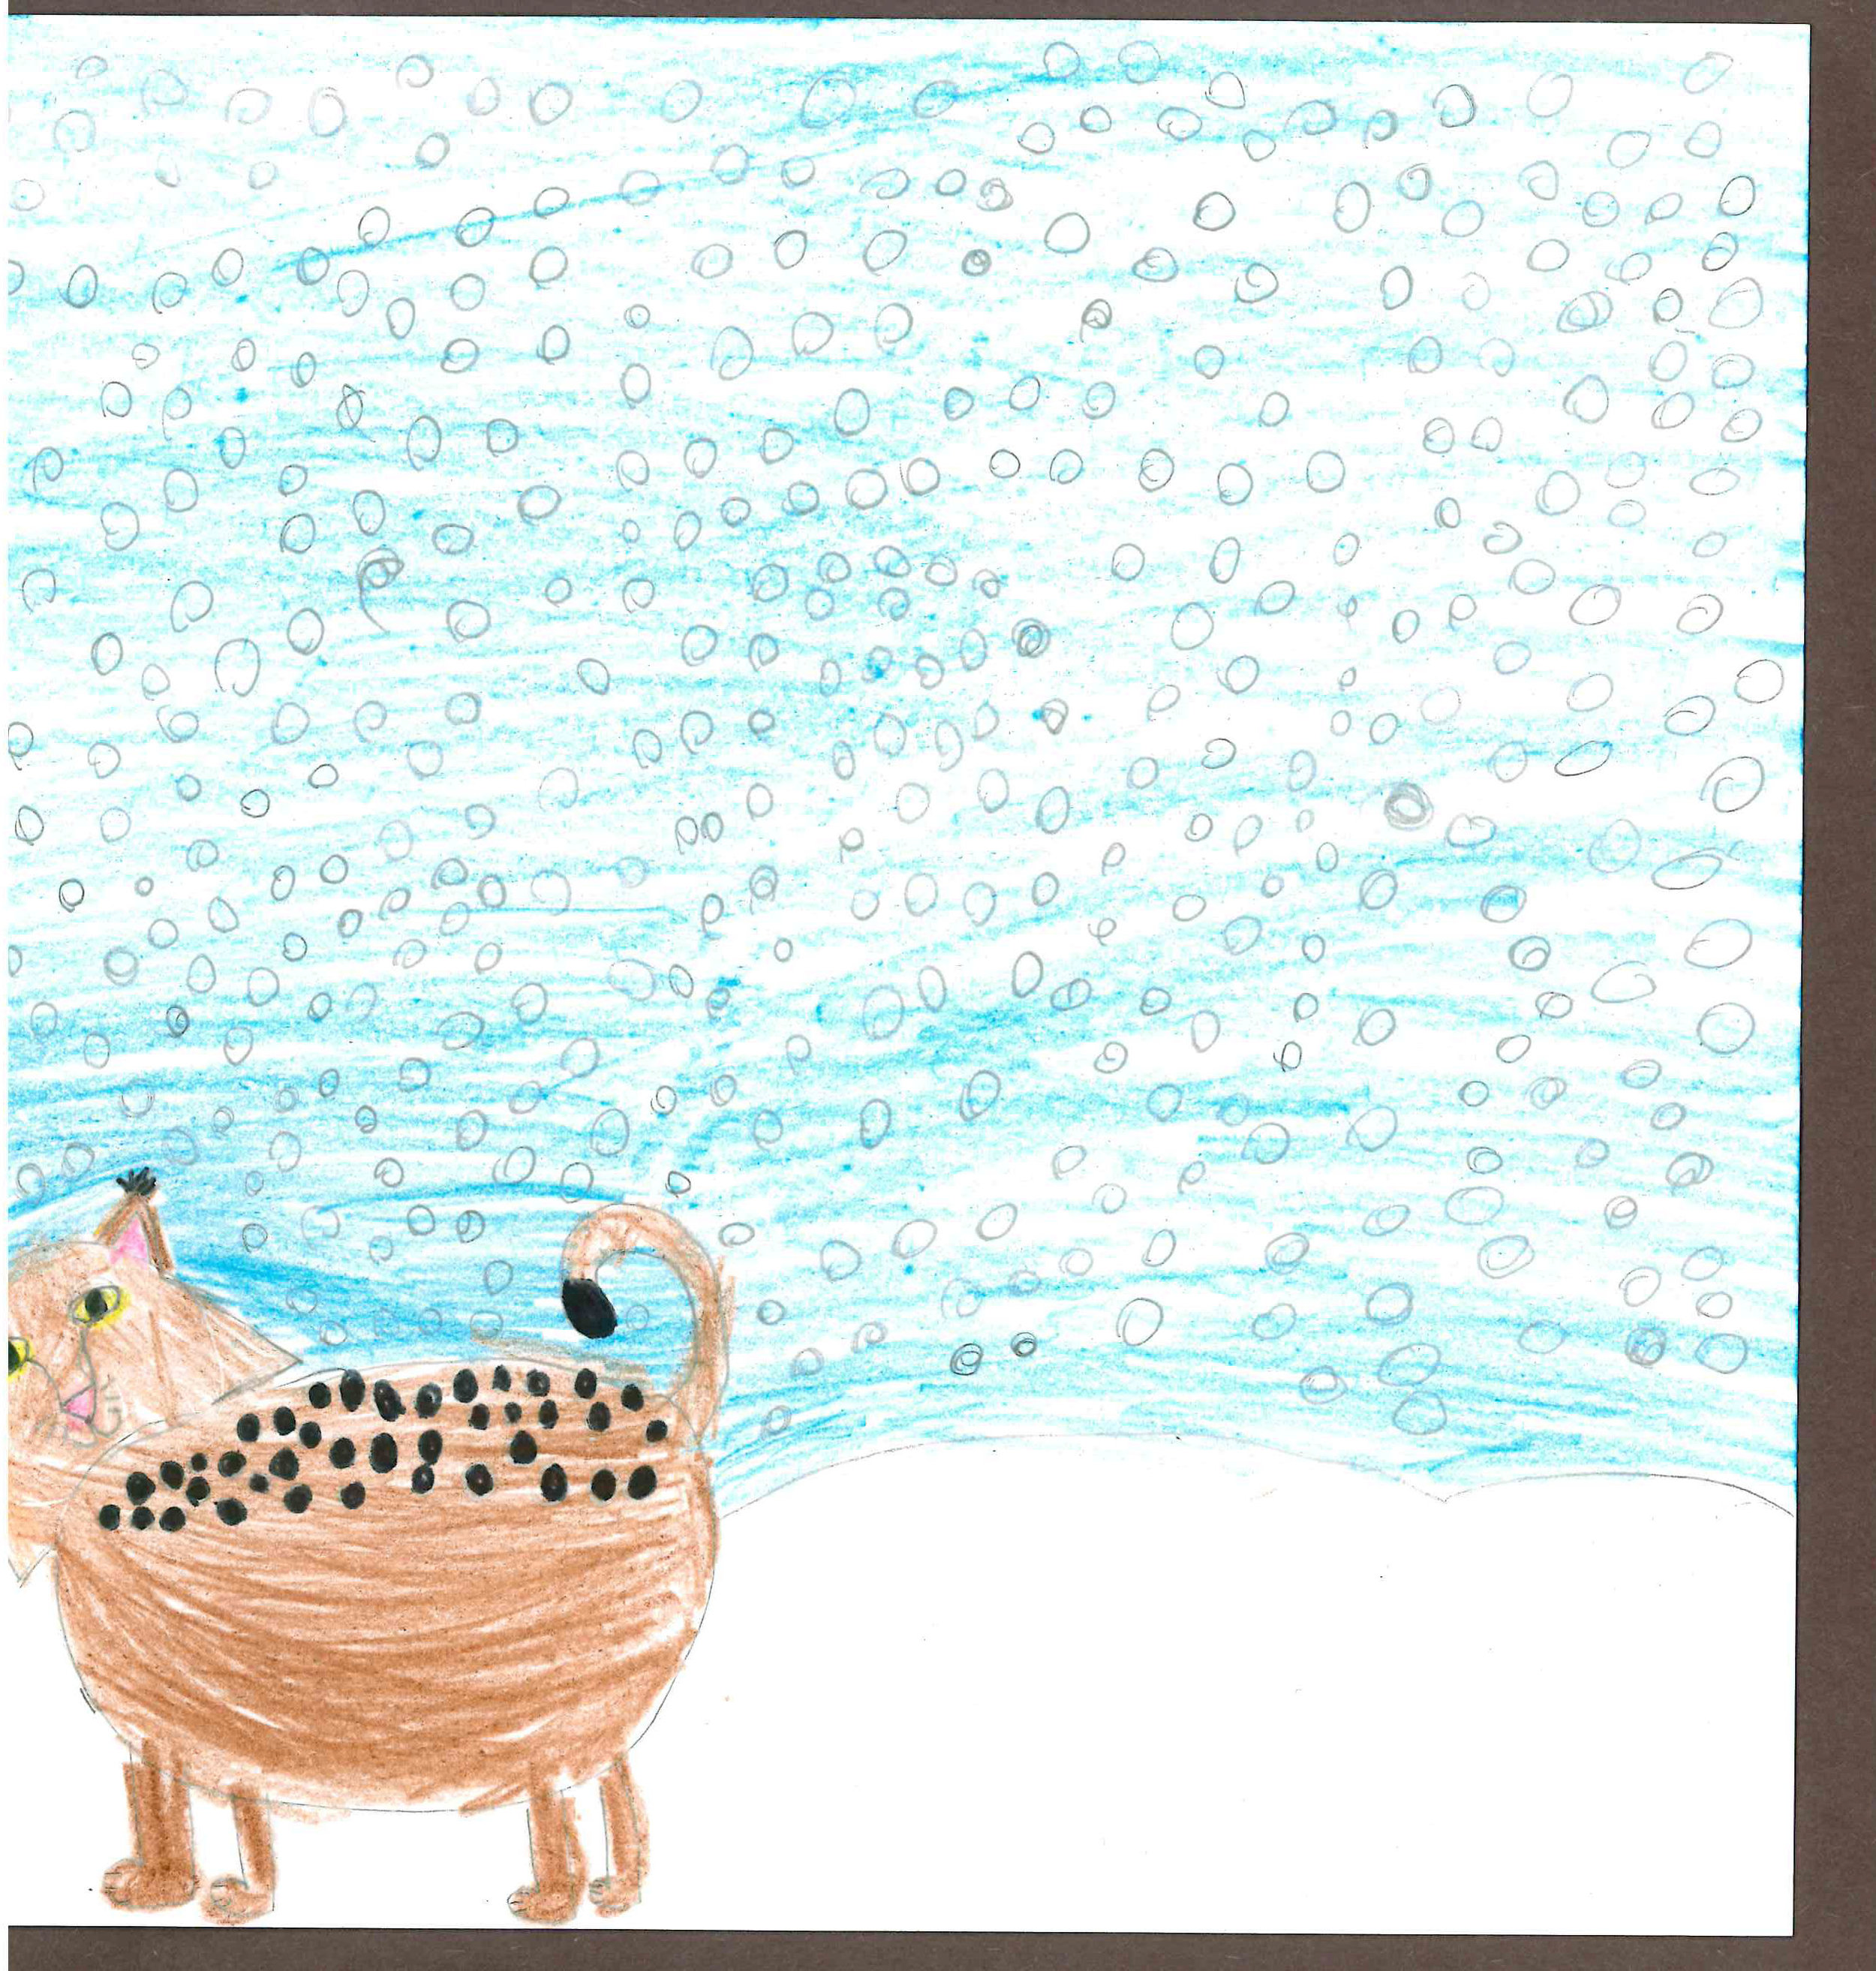 Snowy Lynx by Avery Colinas - 3rd place - Grades 3-5